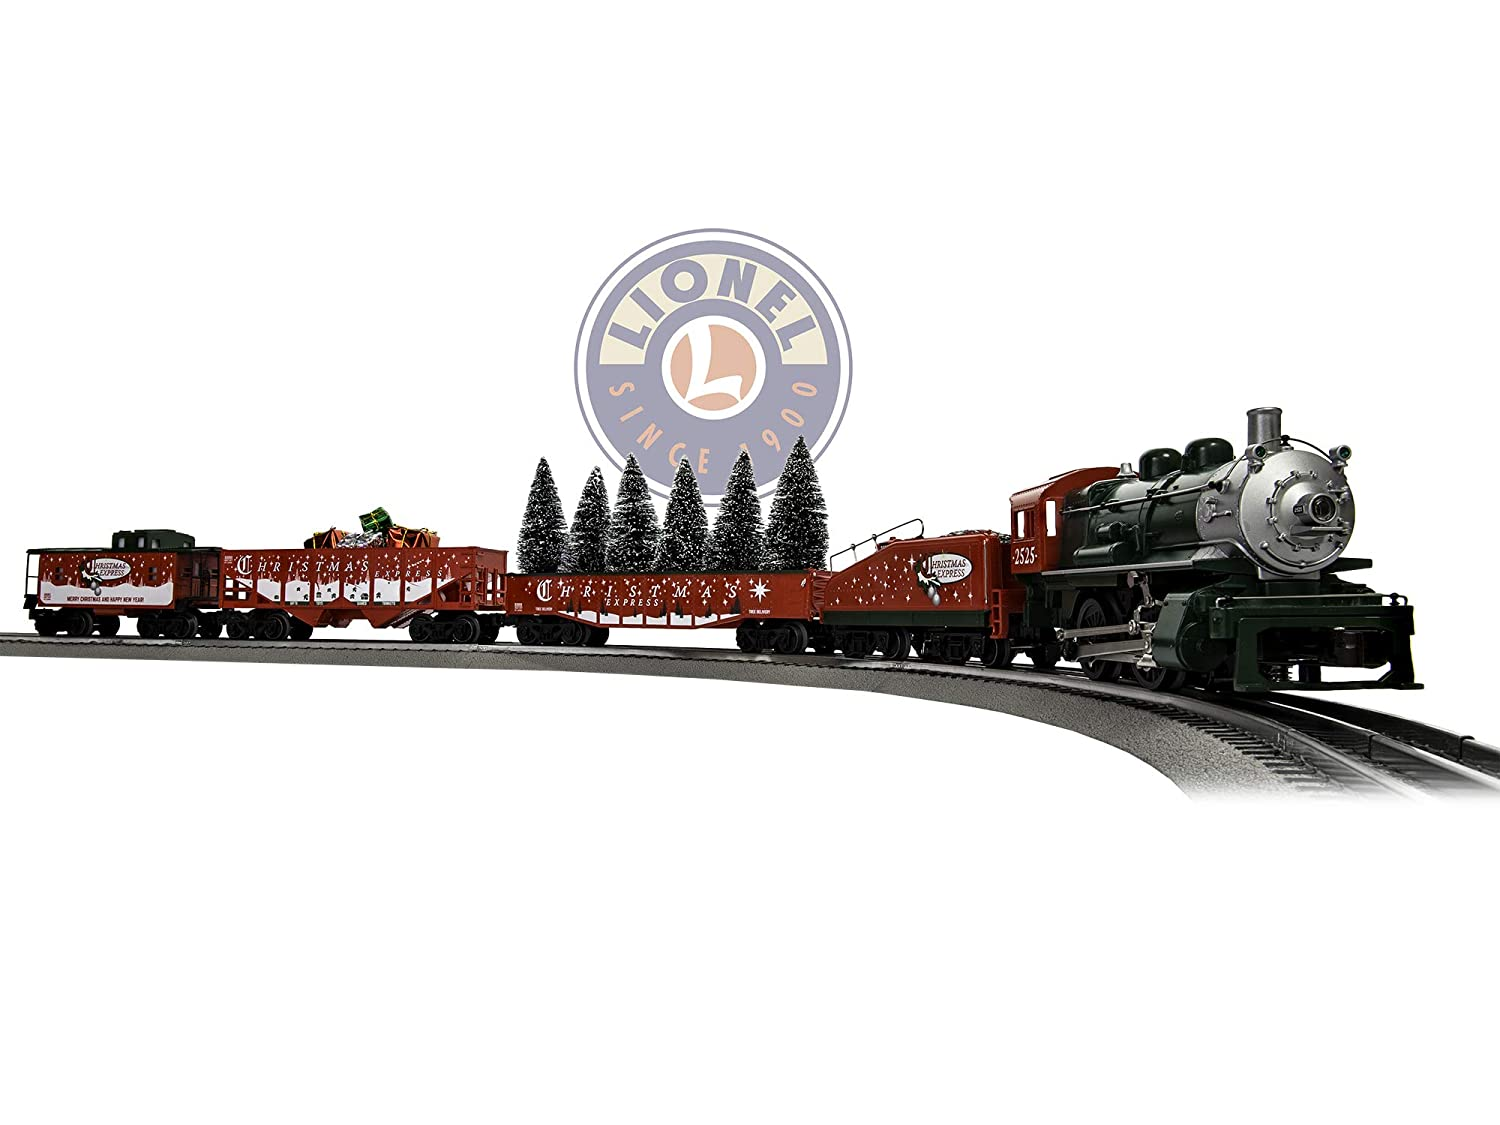 Christmas Train.Lionel The Christmas Express Electric O Gauge Model Train Set W Remote And Bluetooth Capability